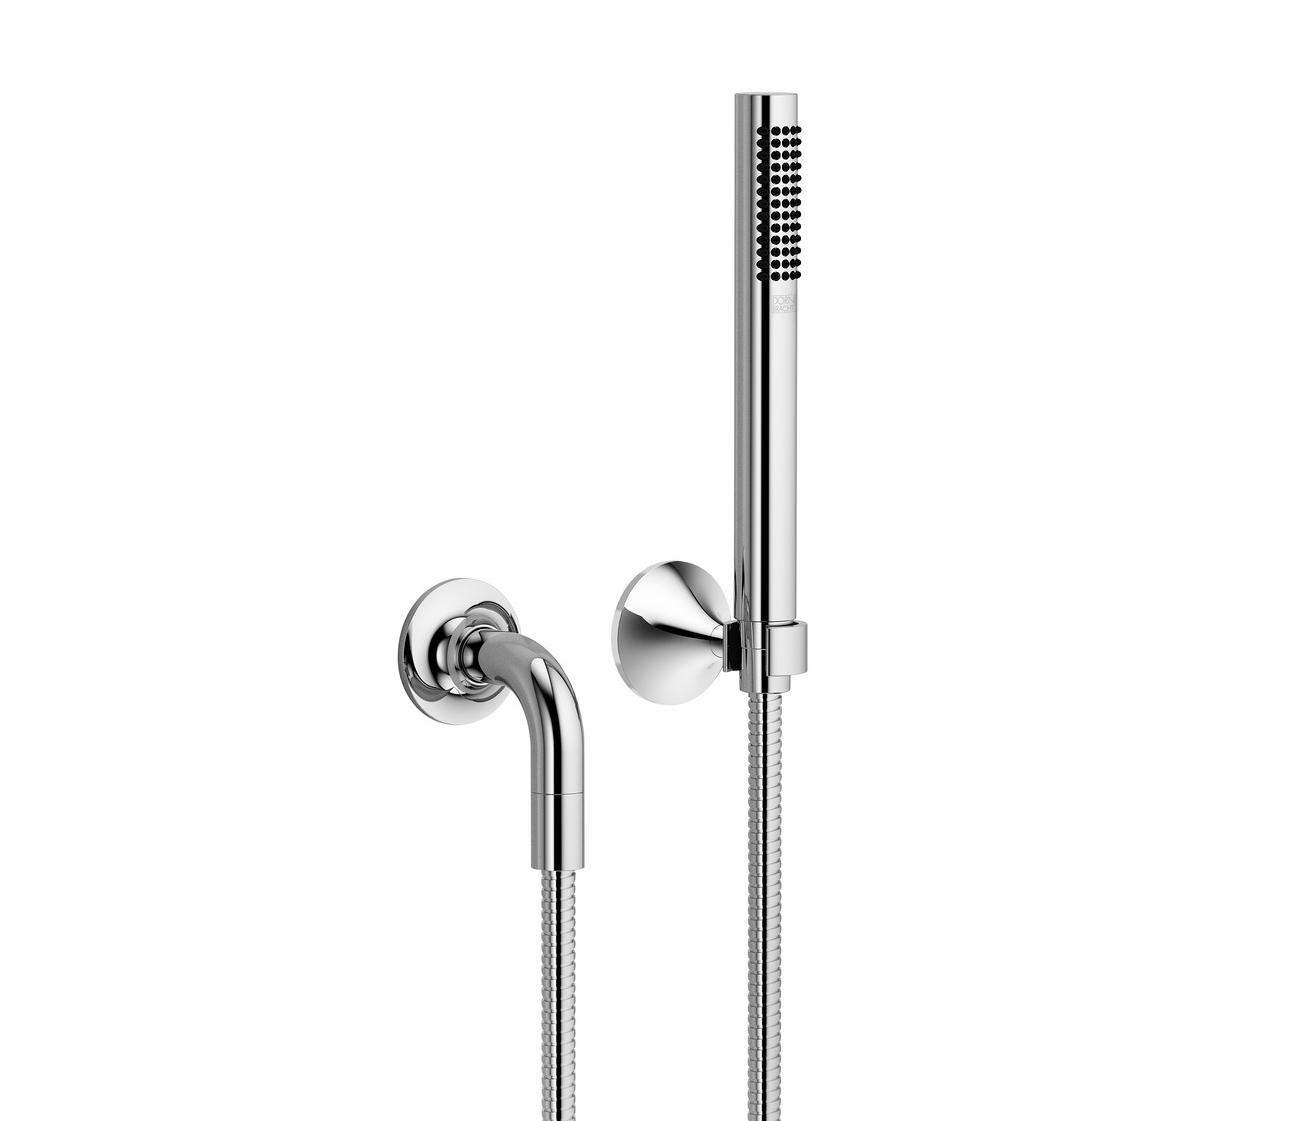 vaia hand shower set shower taps mixers from. Black Bedroom Furniture Sets. Home Design Ideas